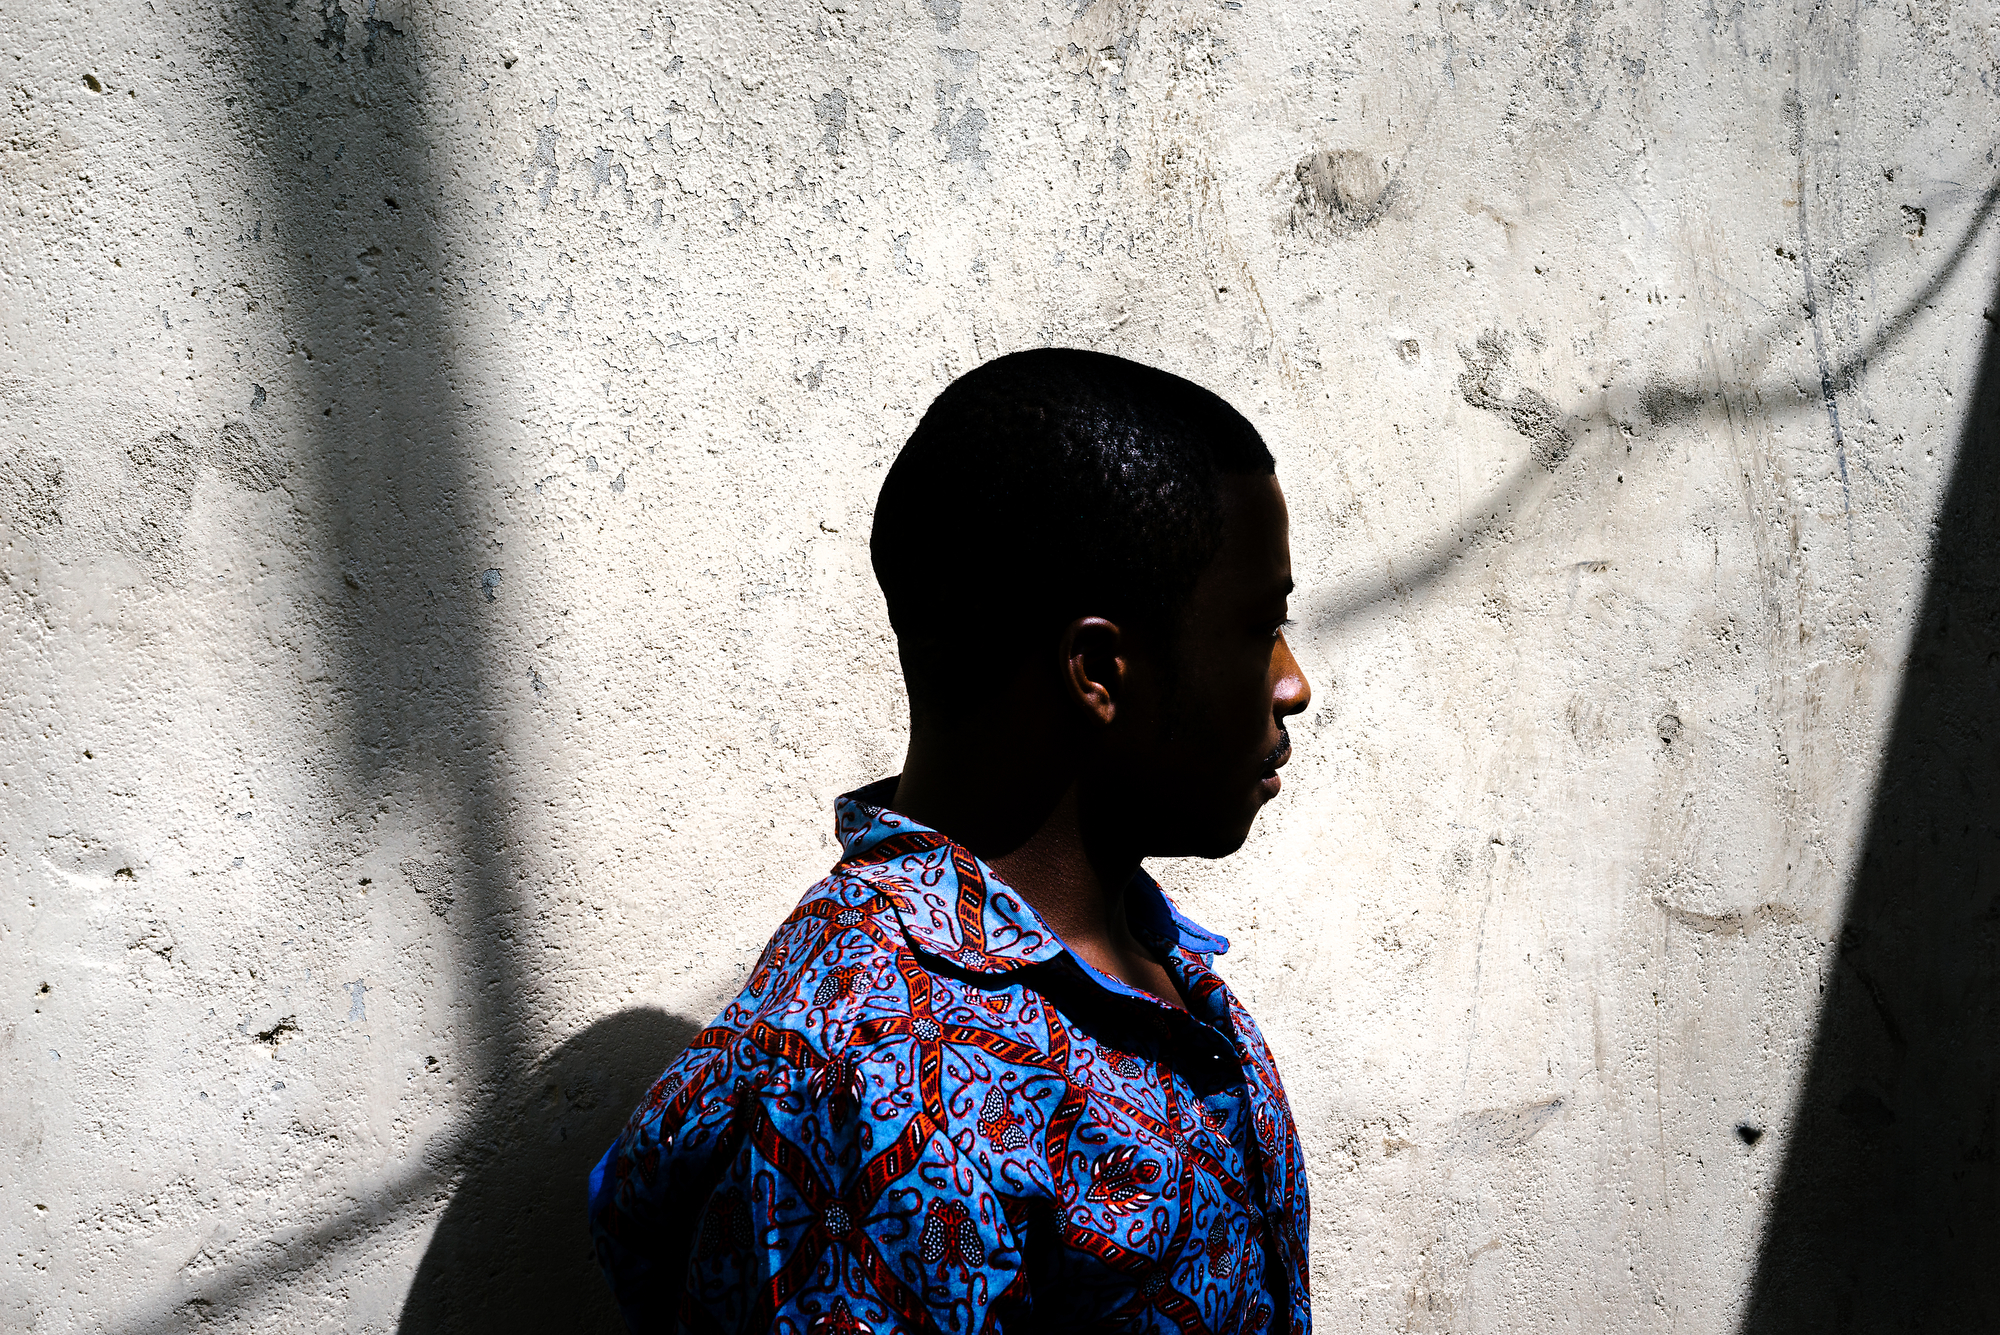 A gay refugee poses for a portrait in front of his home in Nairobi. He was kicked out of his previous apartment by his landlord and beaten by a band of thugs. Now, he lives in hiding.